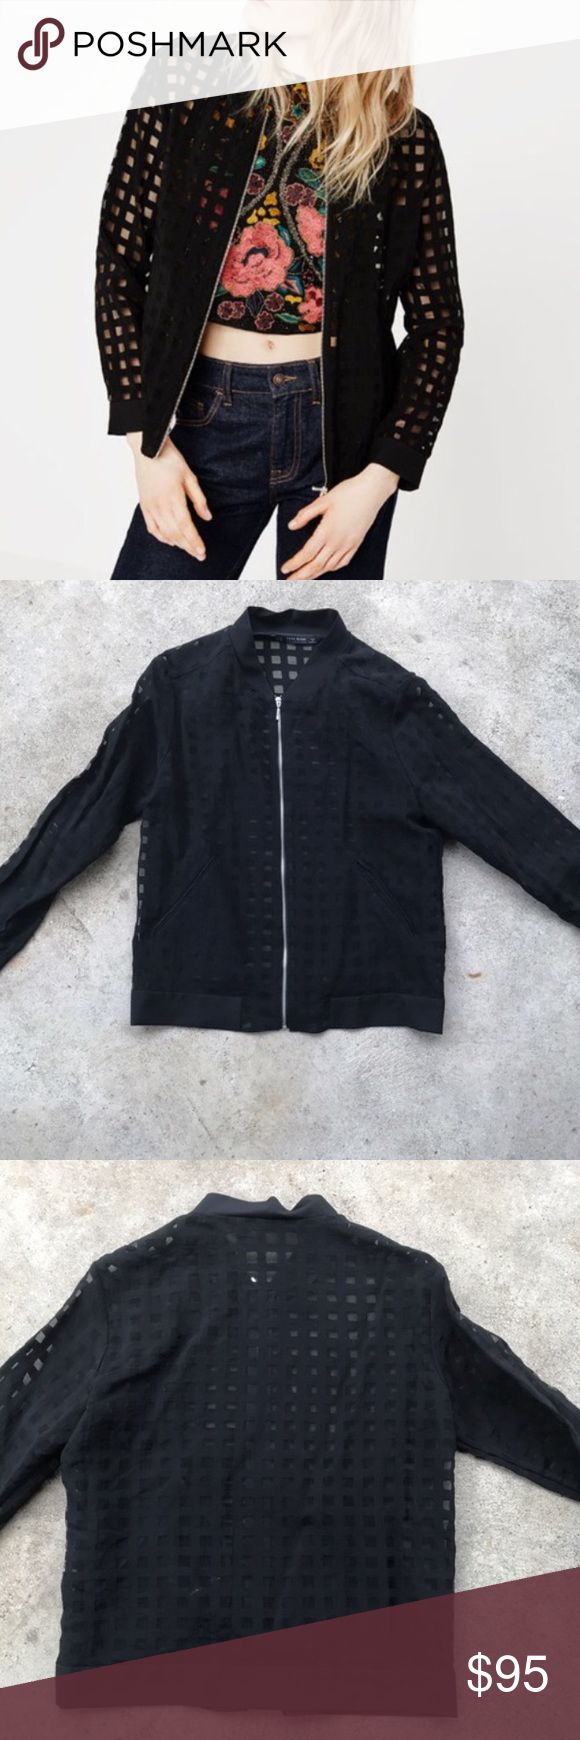 🌵Zara Grid Bomber Jacket Awesome Zara jacket. Very cool looking & modern & versatile. Doesn't fit me right or I'd keep it. Love the look! Excellent pre-loved condition! Zara Jackets & Coats